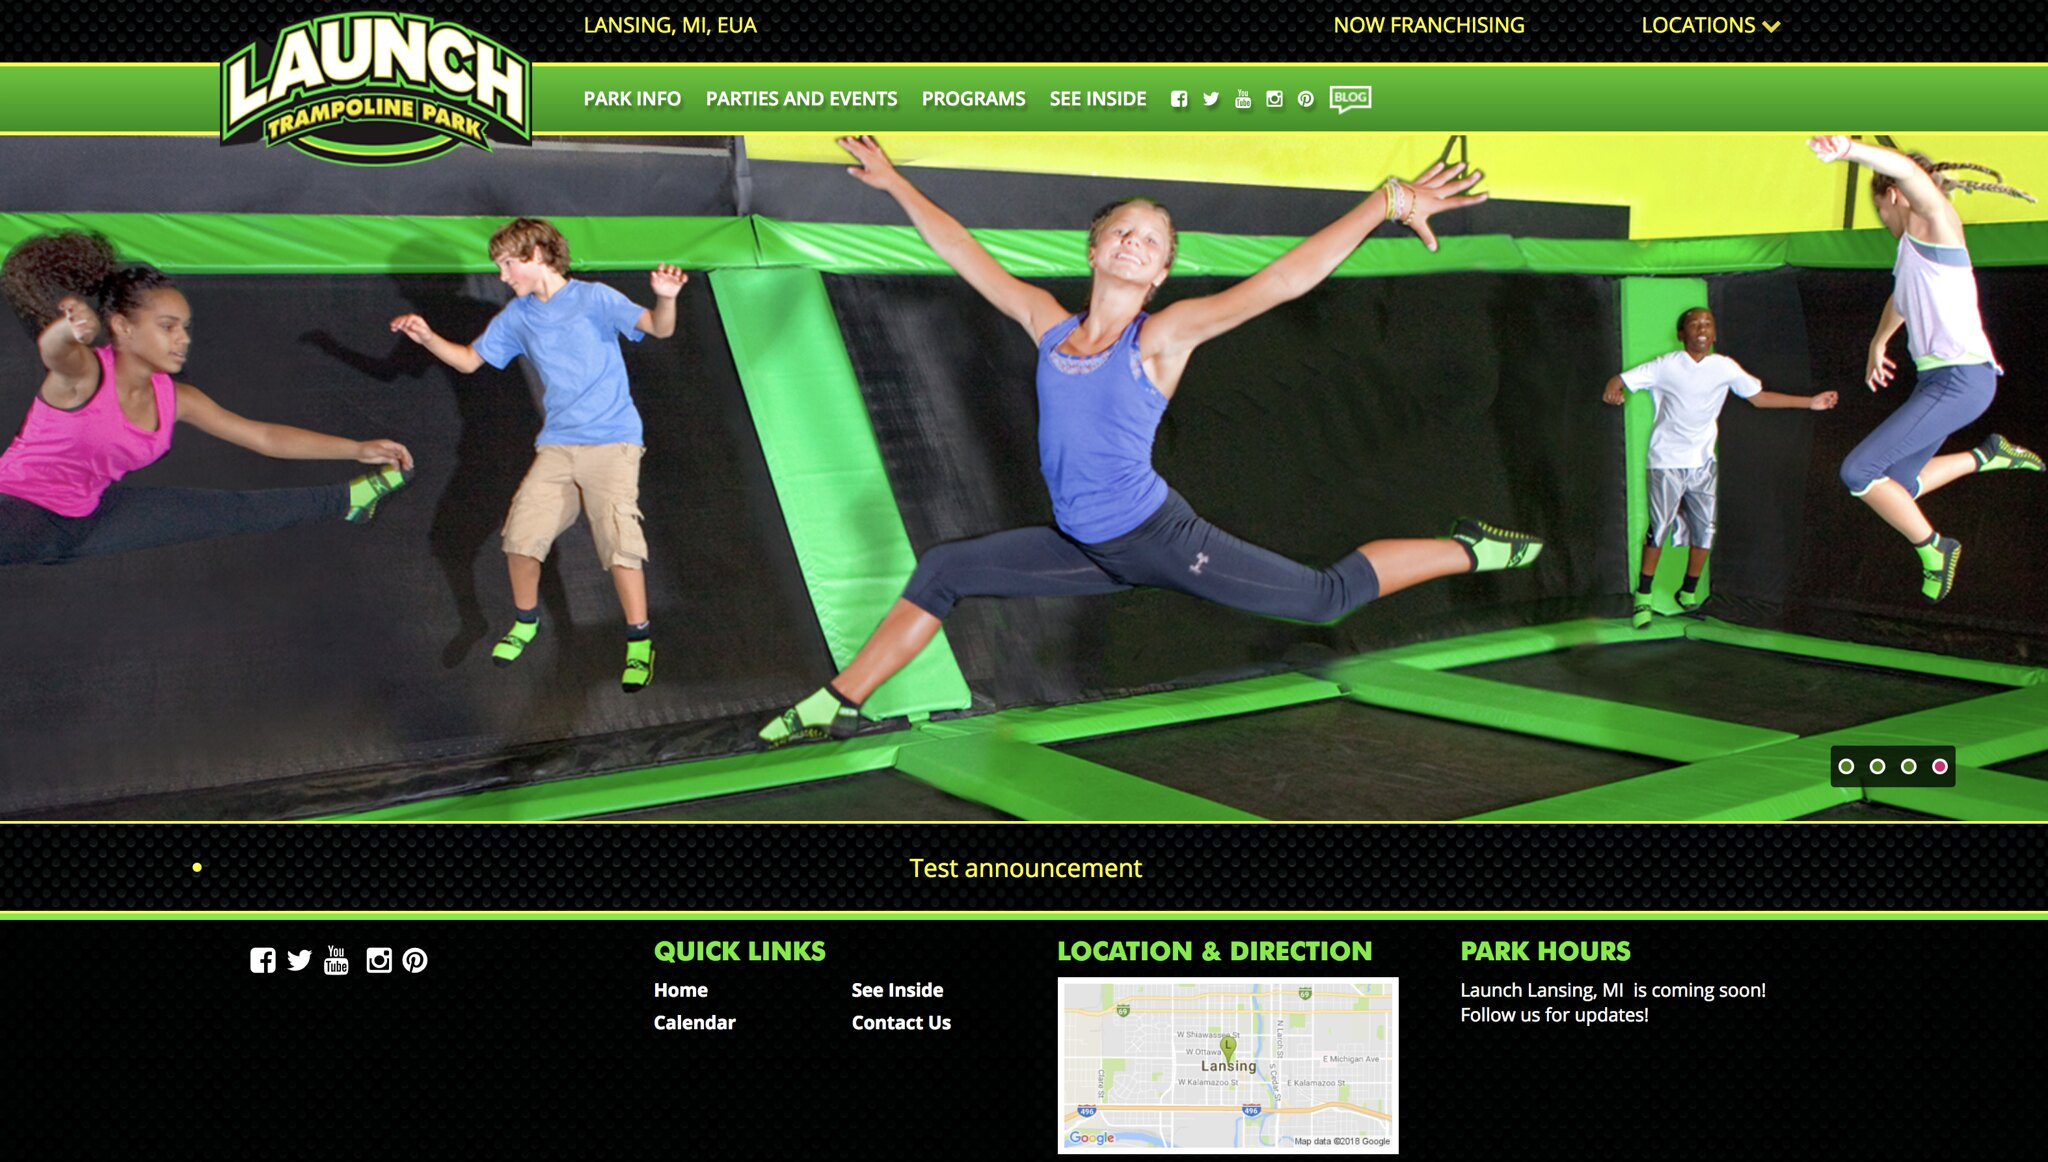 Meridian Mall Confirms Launch Trampoline Park Will Open This Summer